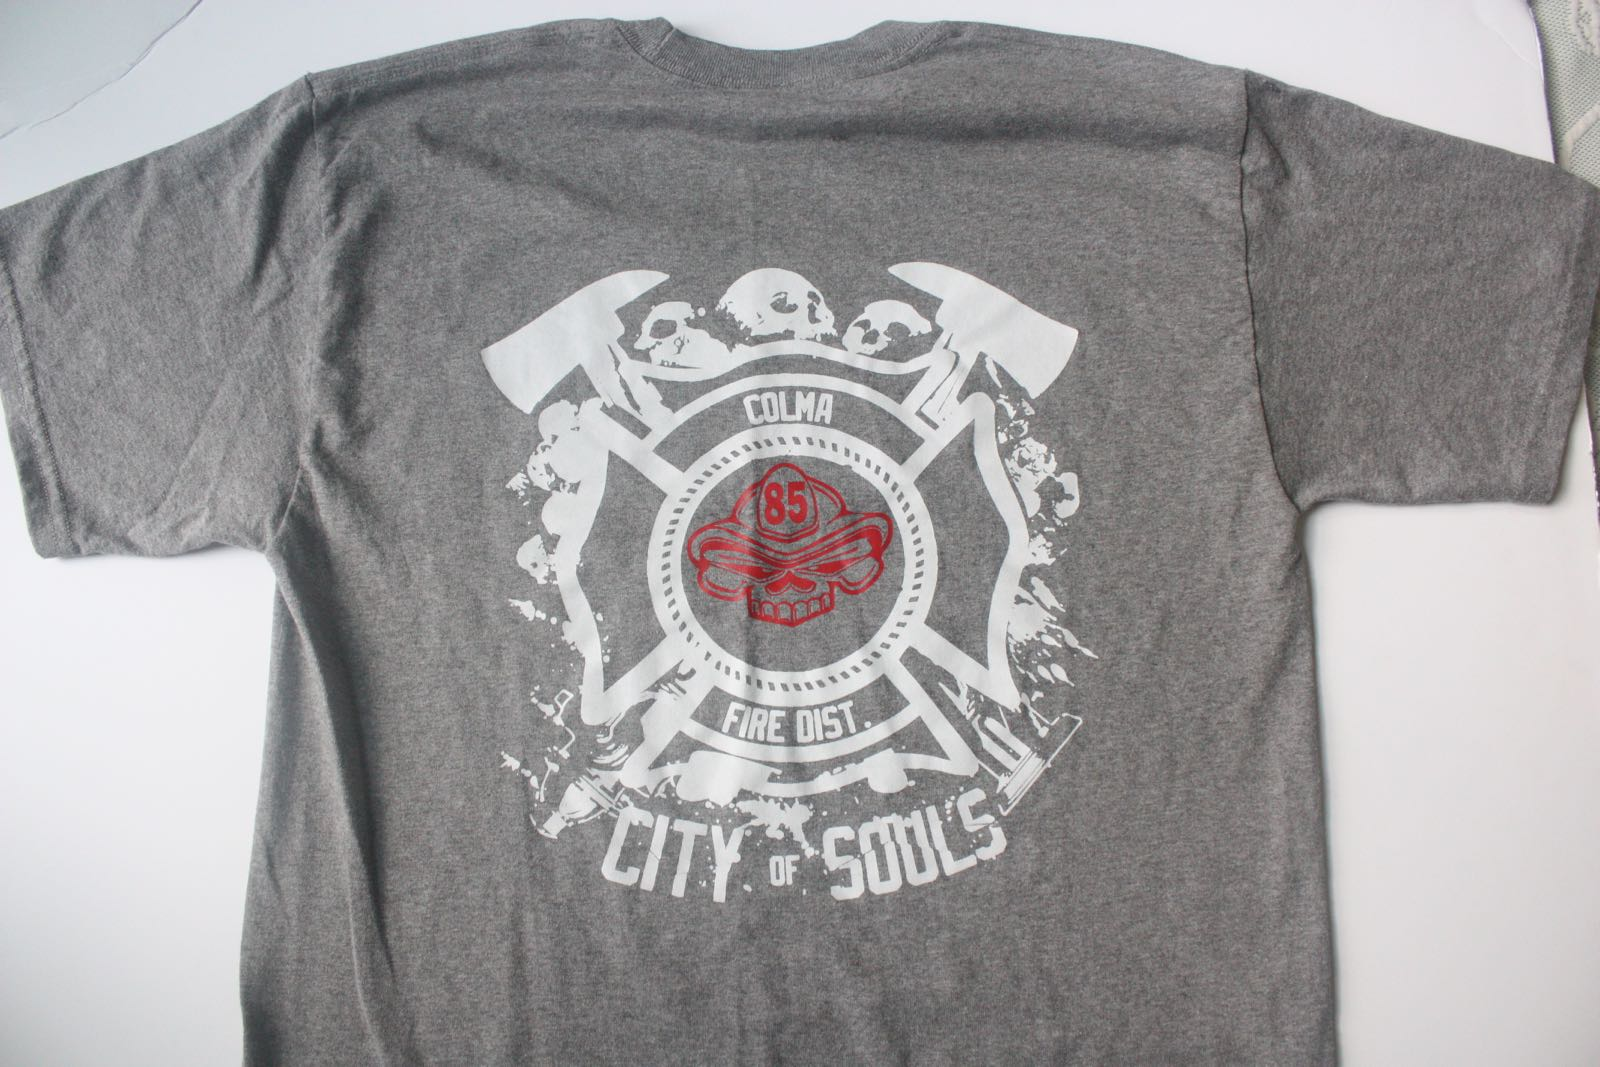 Colma Fire Department Tee